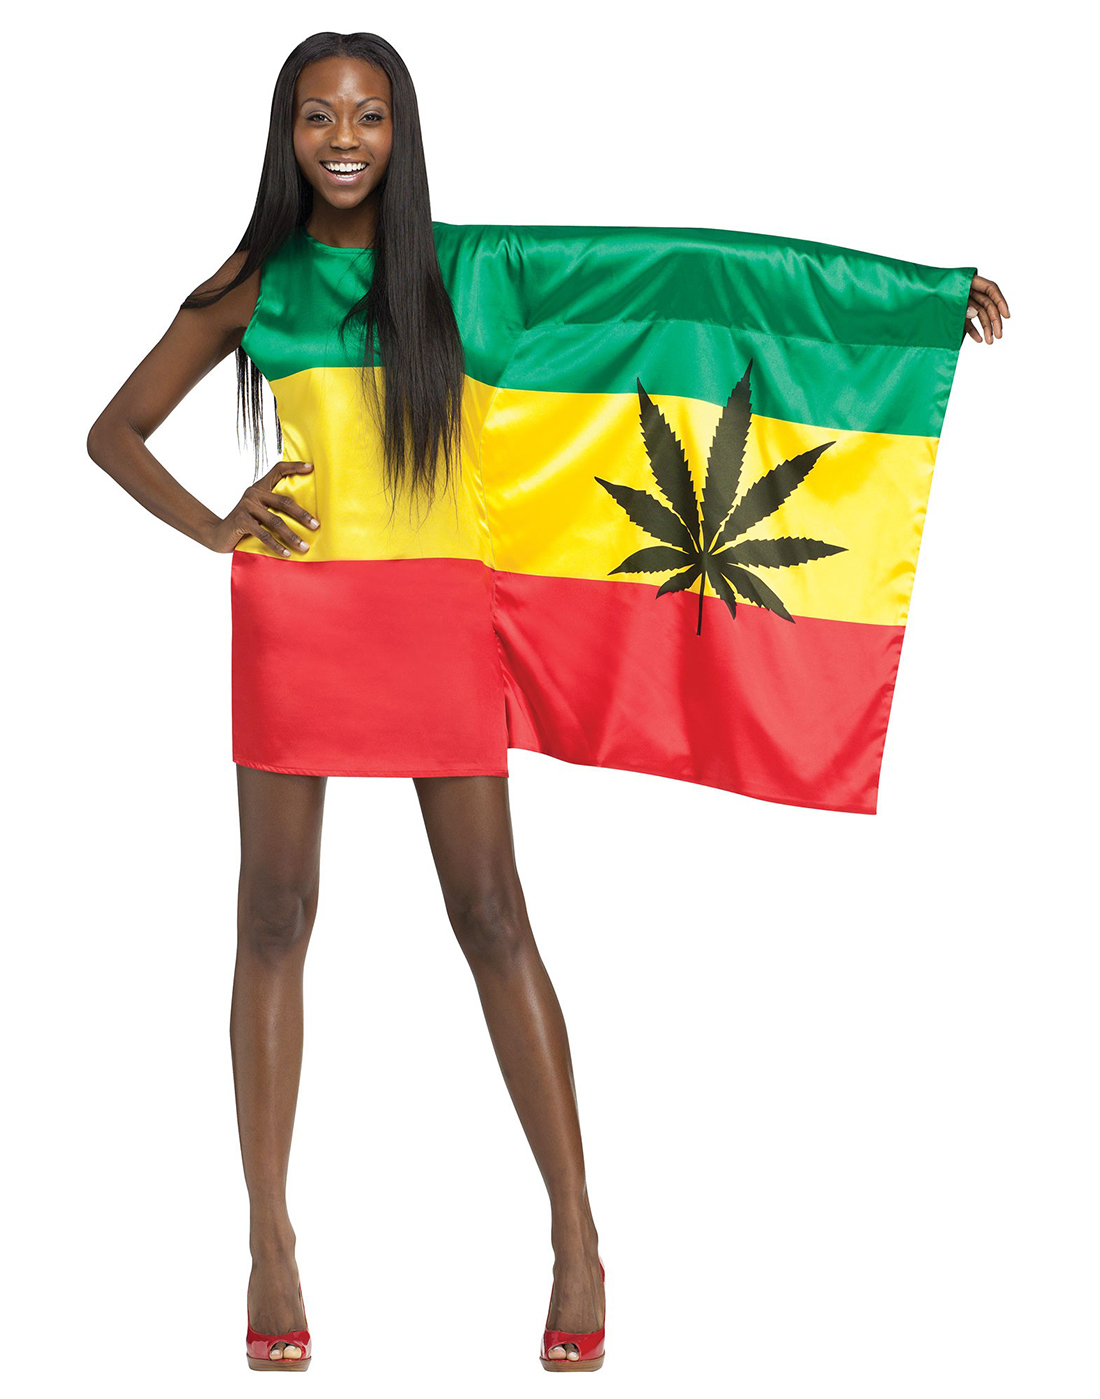 Jamaican Halloween Costume halloween in jamaica not celebrated 15 Awesome Weed Themed Halloween Costumes